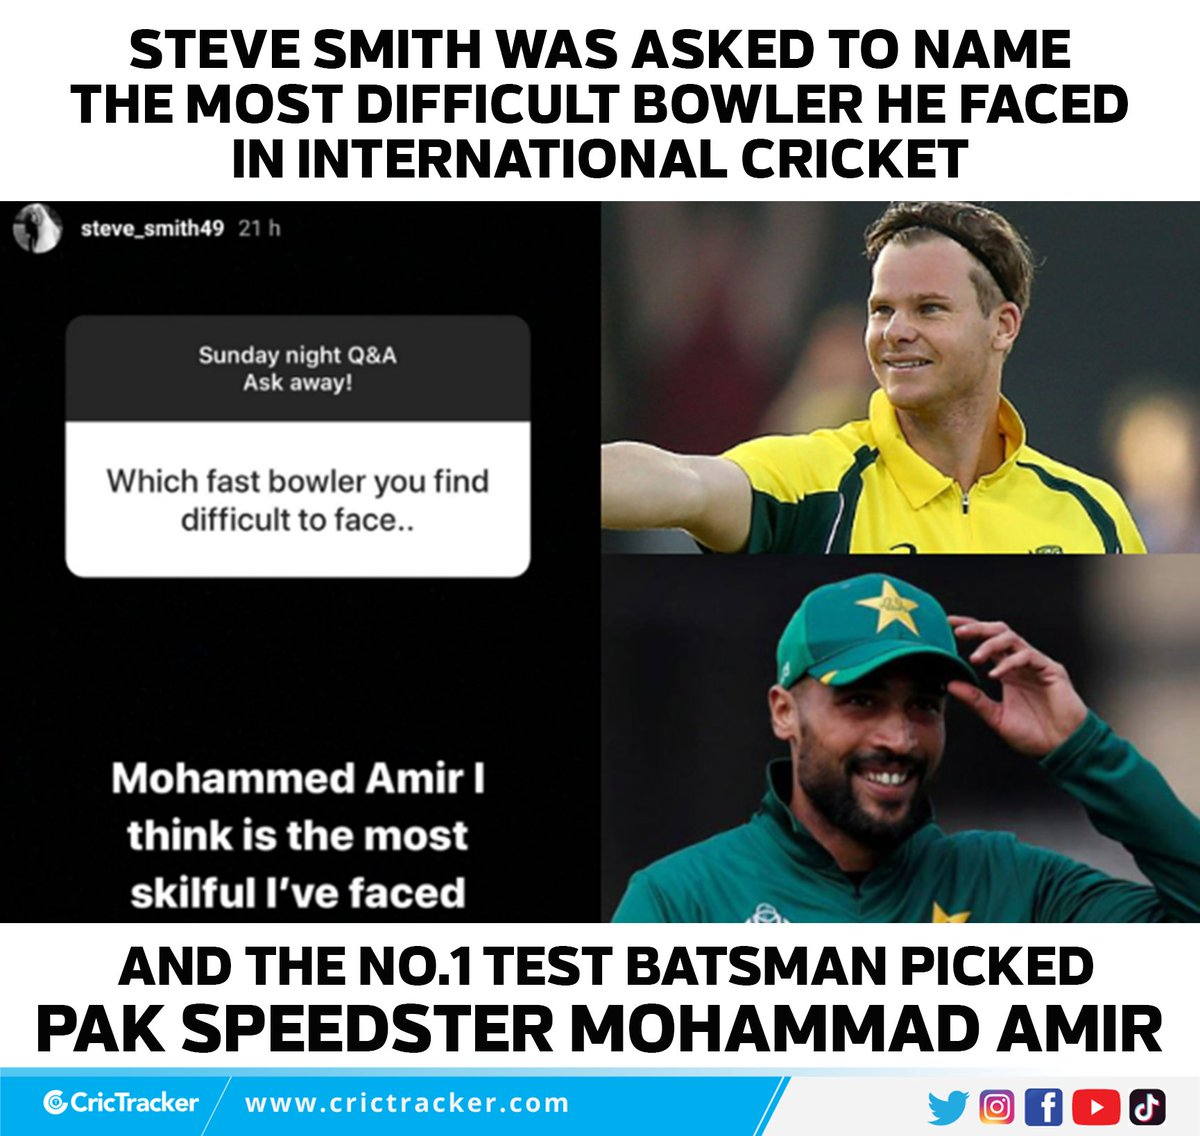 .@stevesmith49 named @iamamirofficial as the most skillful bowler he has ever faced in International cricket. #MohammadAmir #Cricket #SteveSmith #Bowler #CricTracker